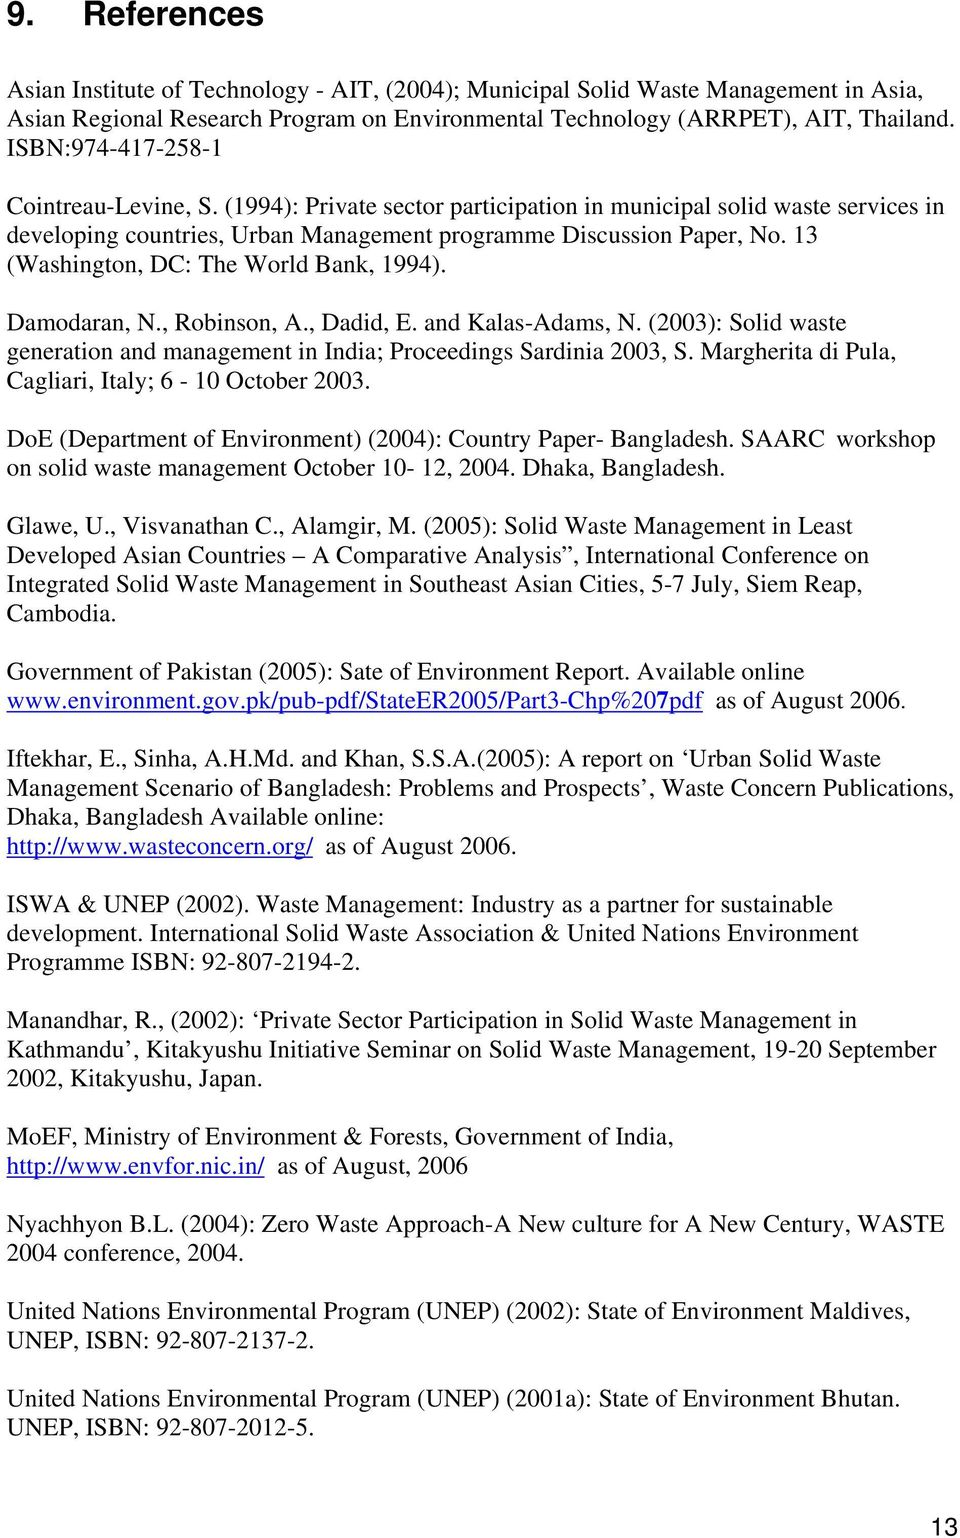 13 (Washington, DC: The World Bank, 1994). Damodaran, N., Robinson, A., Dadid, E. and Kalas-Adams, N. (2003): Solid waste generation and management in India; Proceedings Sardinia 2003, S.